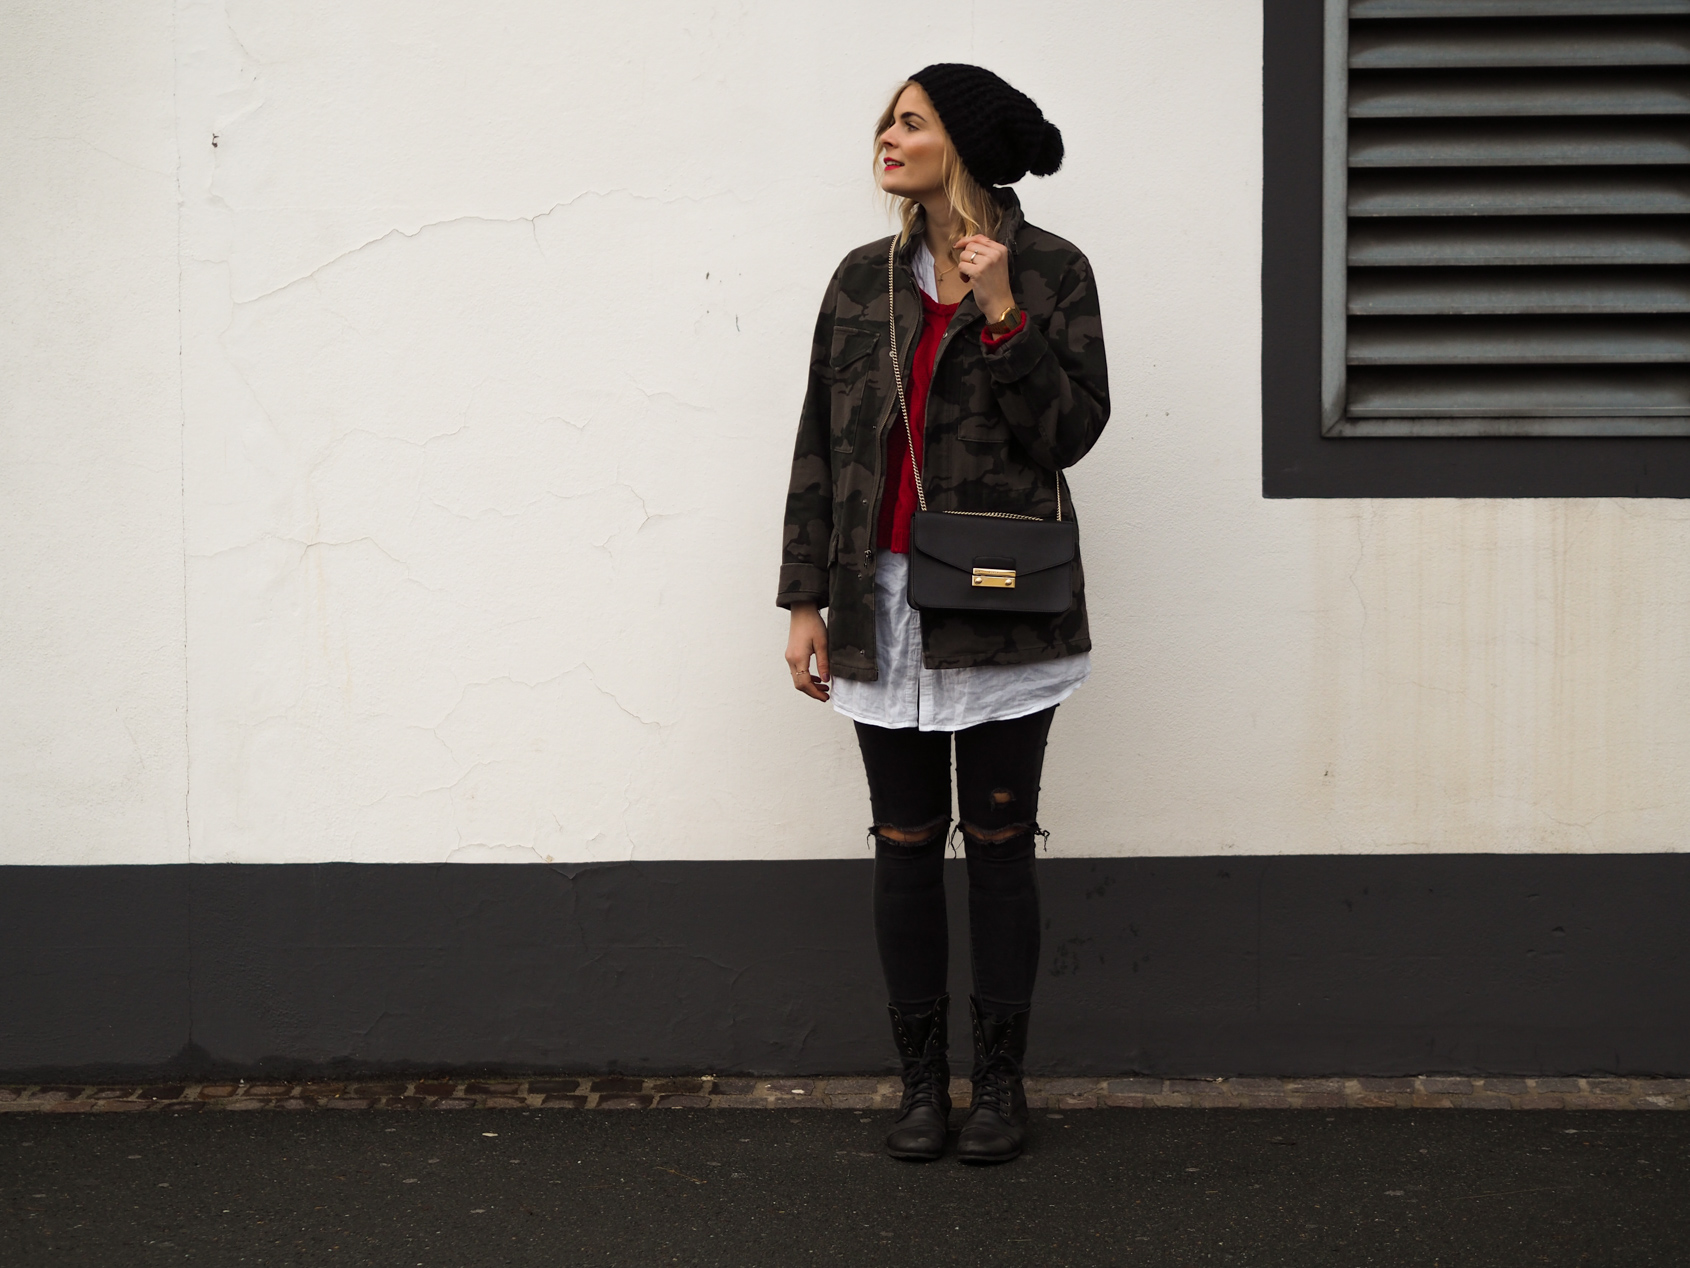 military style, furla tasche, roter Strickpullover, Haube, Weiße Bluse, Ripped Jeans, Boots, Streetlook, Winterlook, Casio Uhr